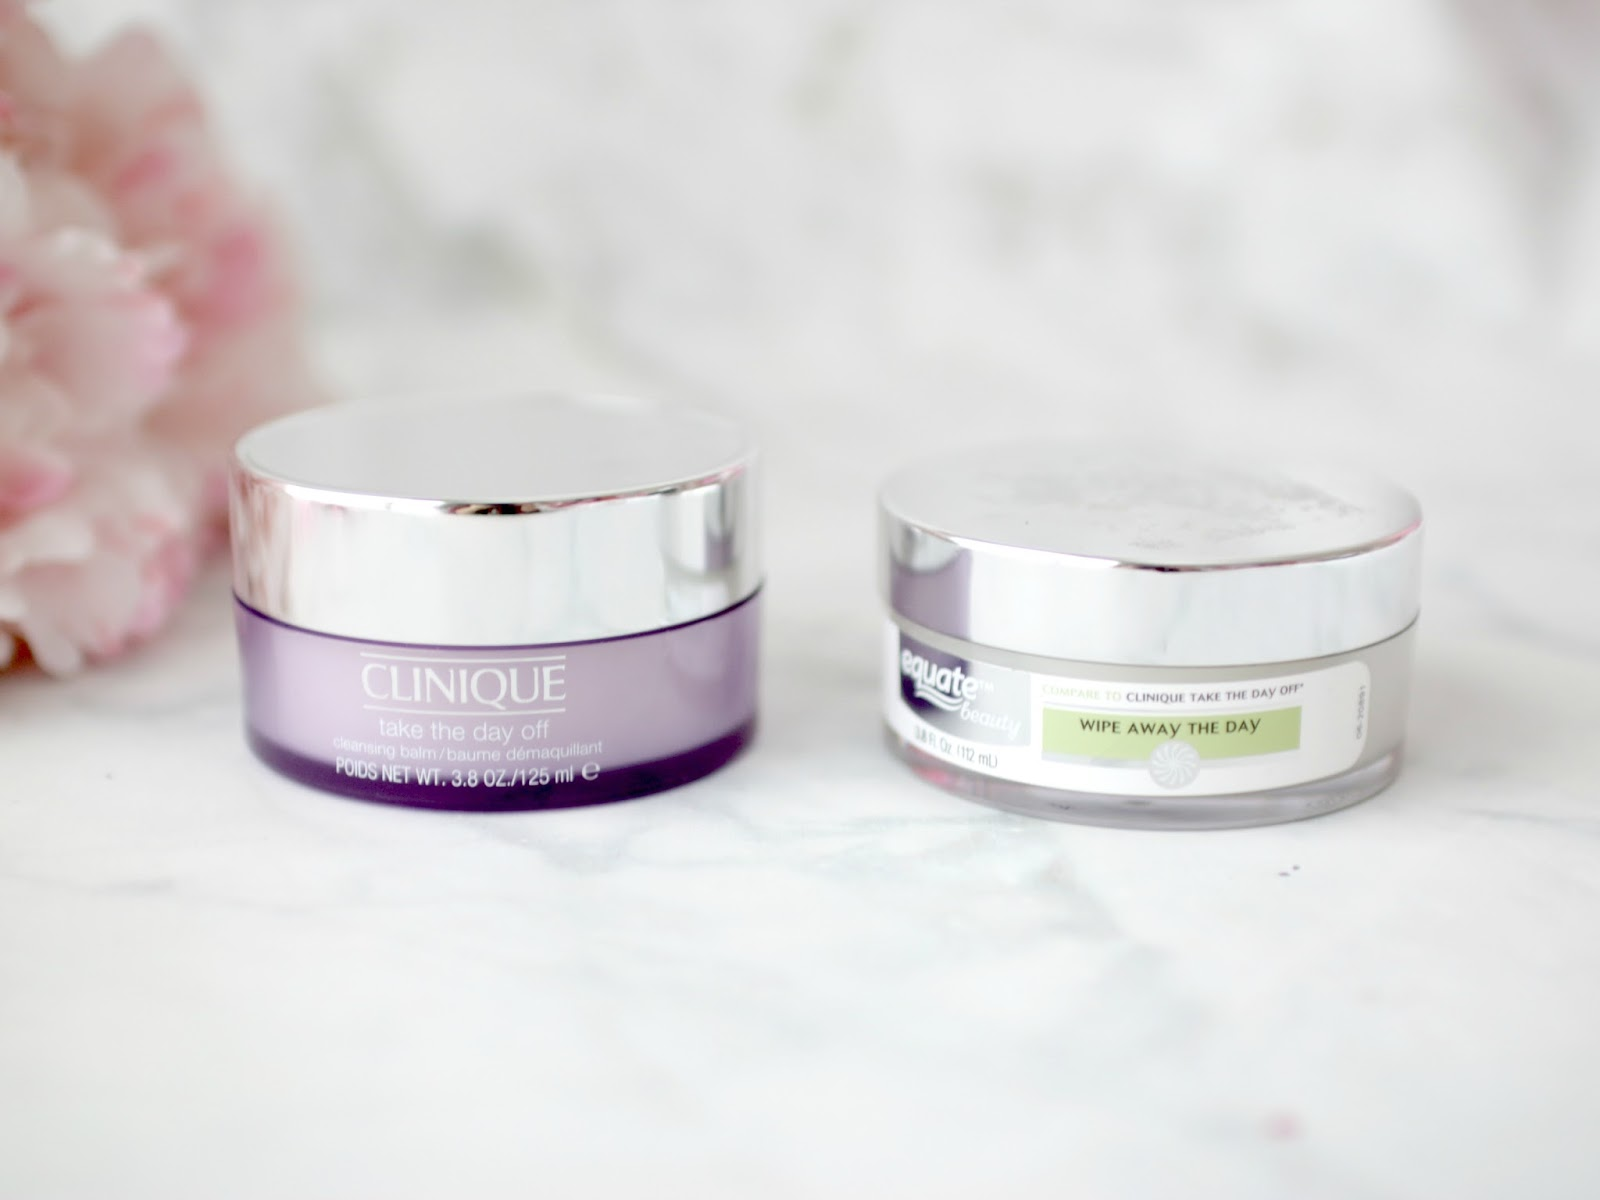 Dupe Clinique Take The Day Away Vs Equate Wipe Away The Day Elle Sees Bloglovin